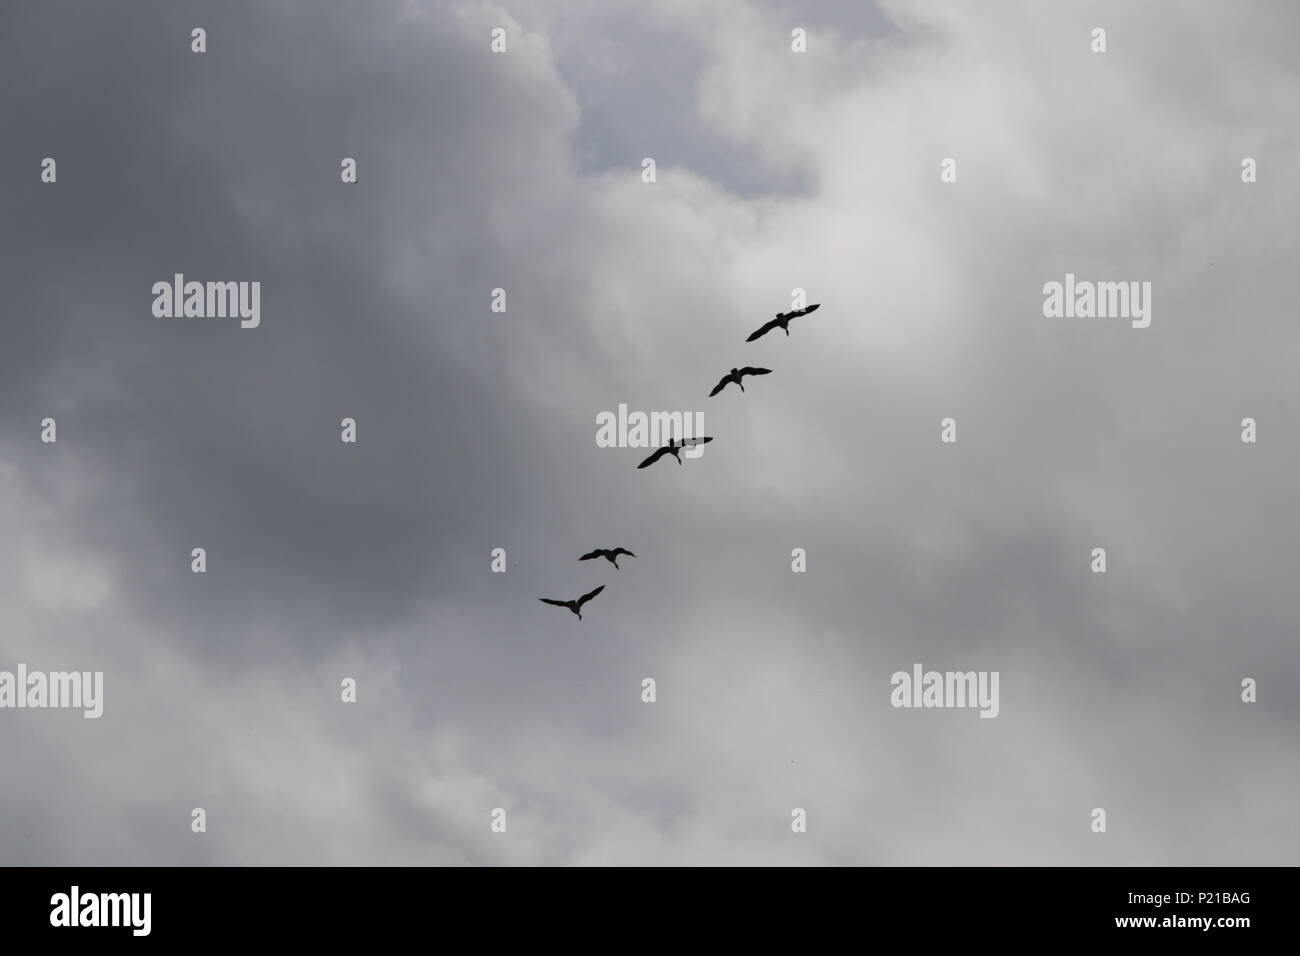 Canadian gees flying above five of them creating a formation  in the sky - Stock Image